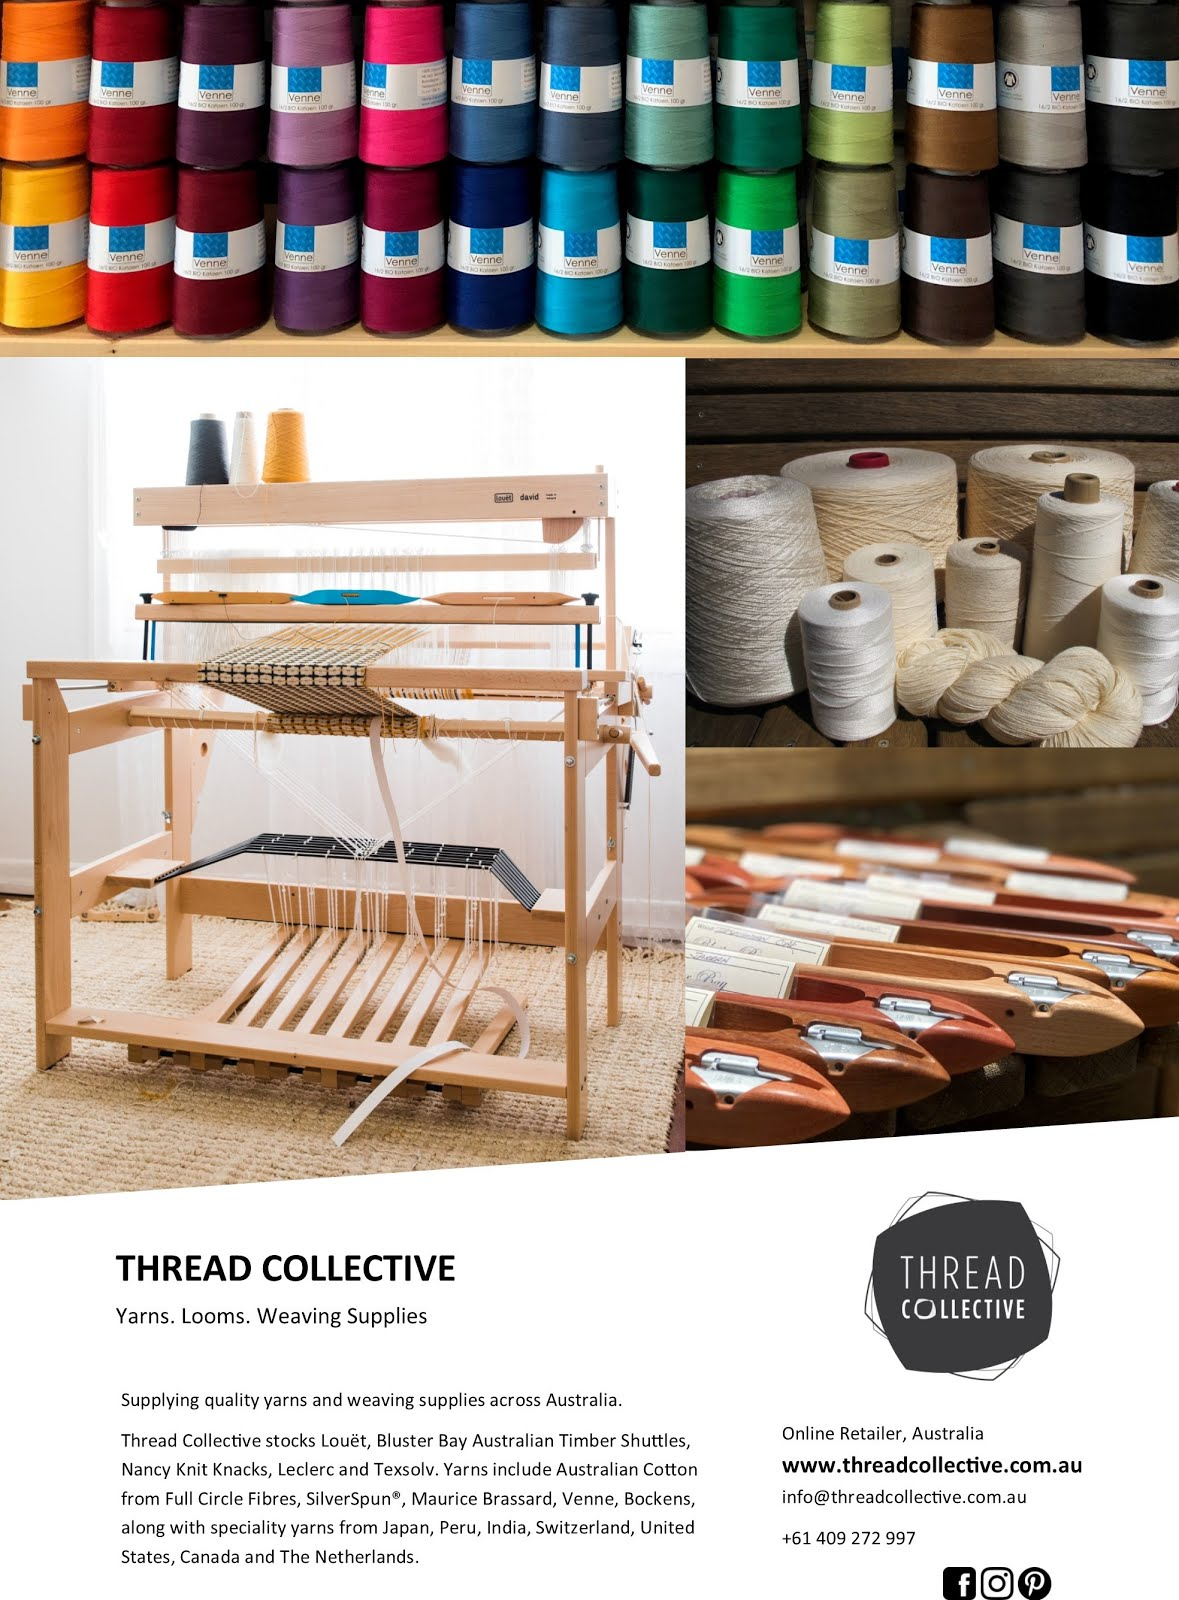 Thread Collective Australia